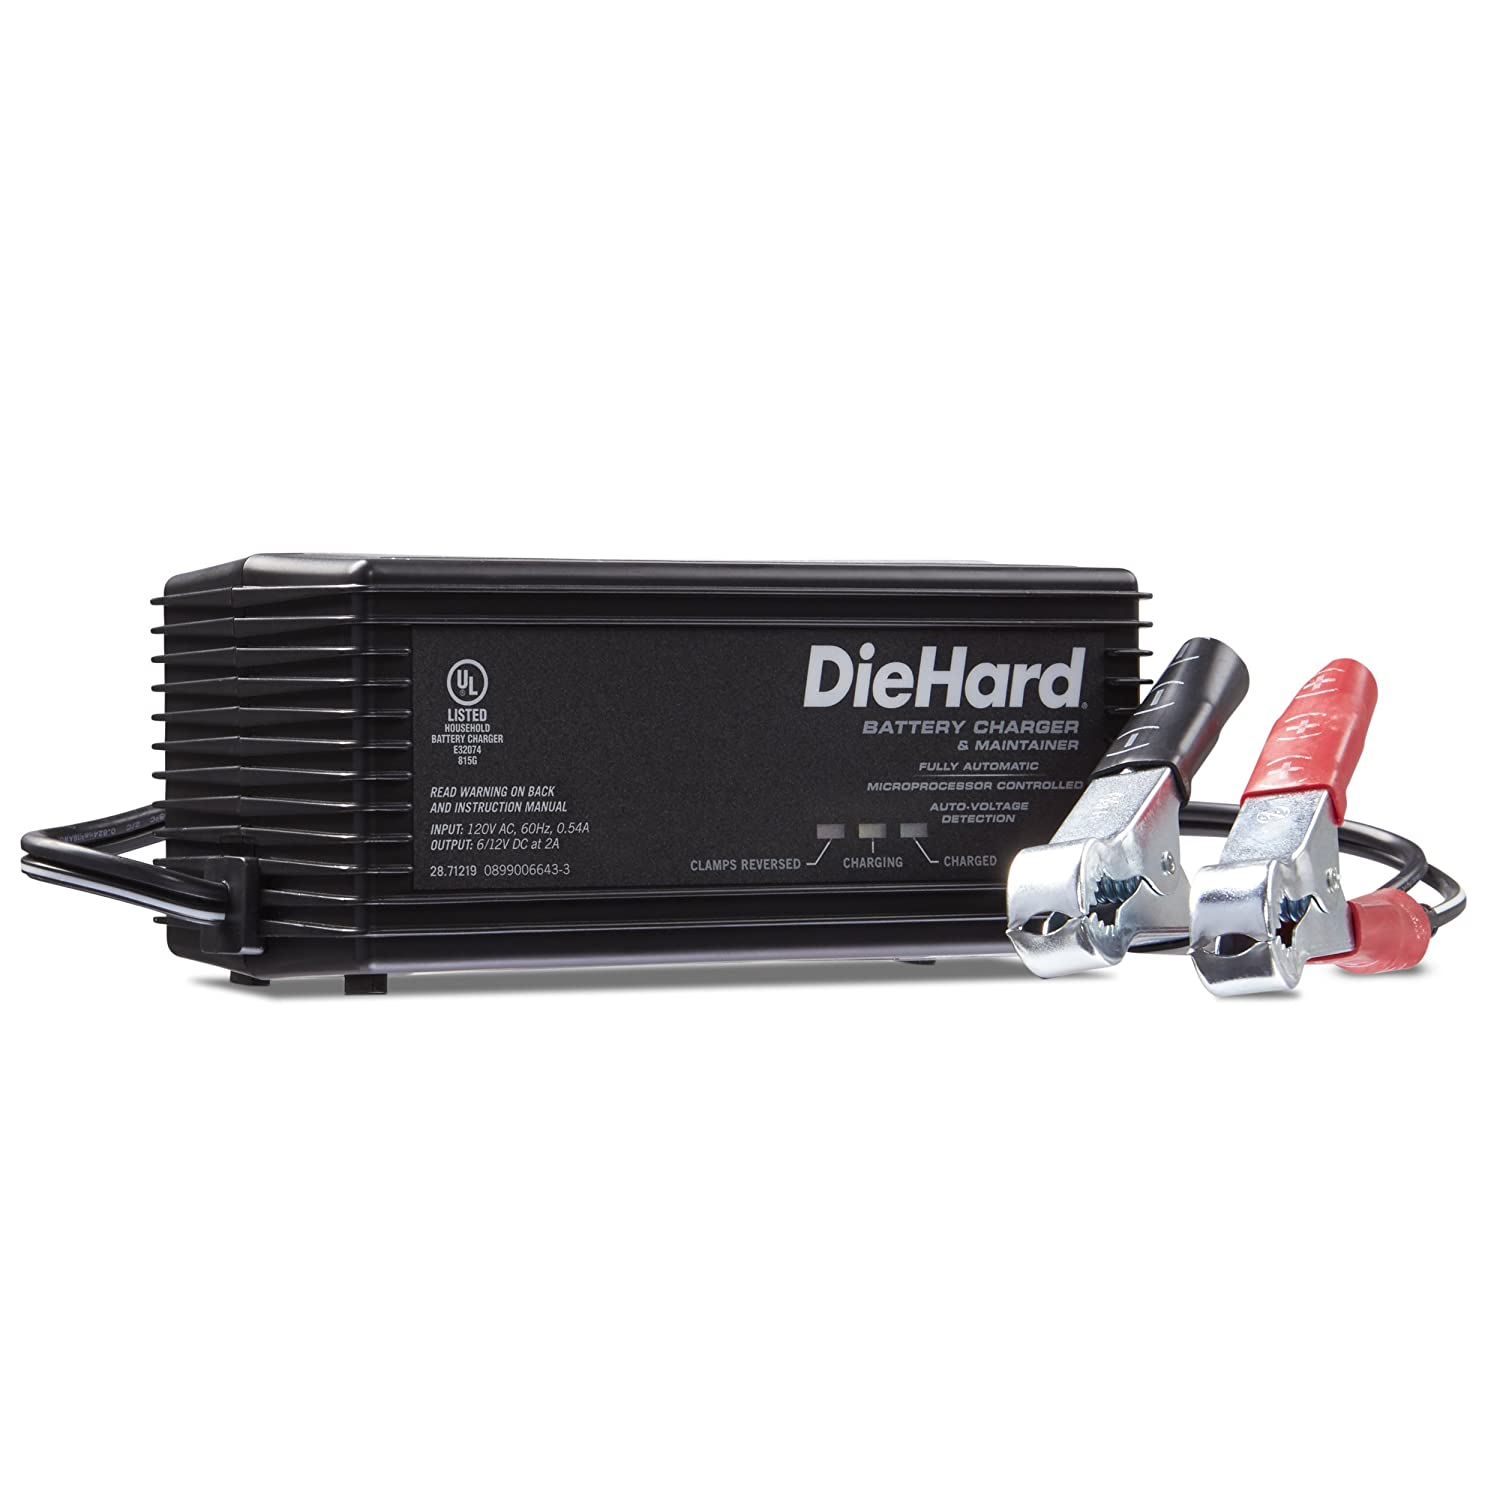 Amazon.com: DieHard 71219 Shelf Smart Battery Charger & Maintainer 6/12  Volt 2 Amp: Automotive